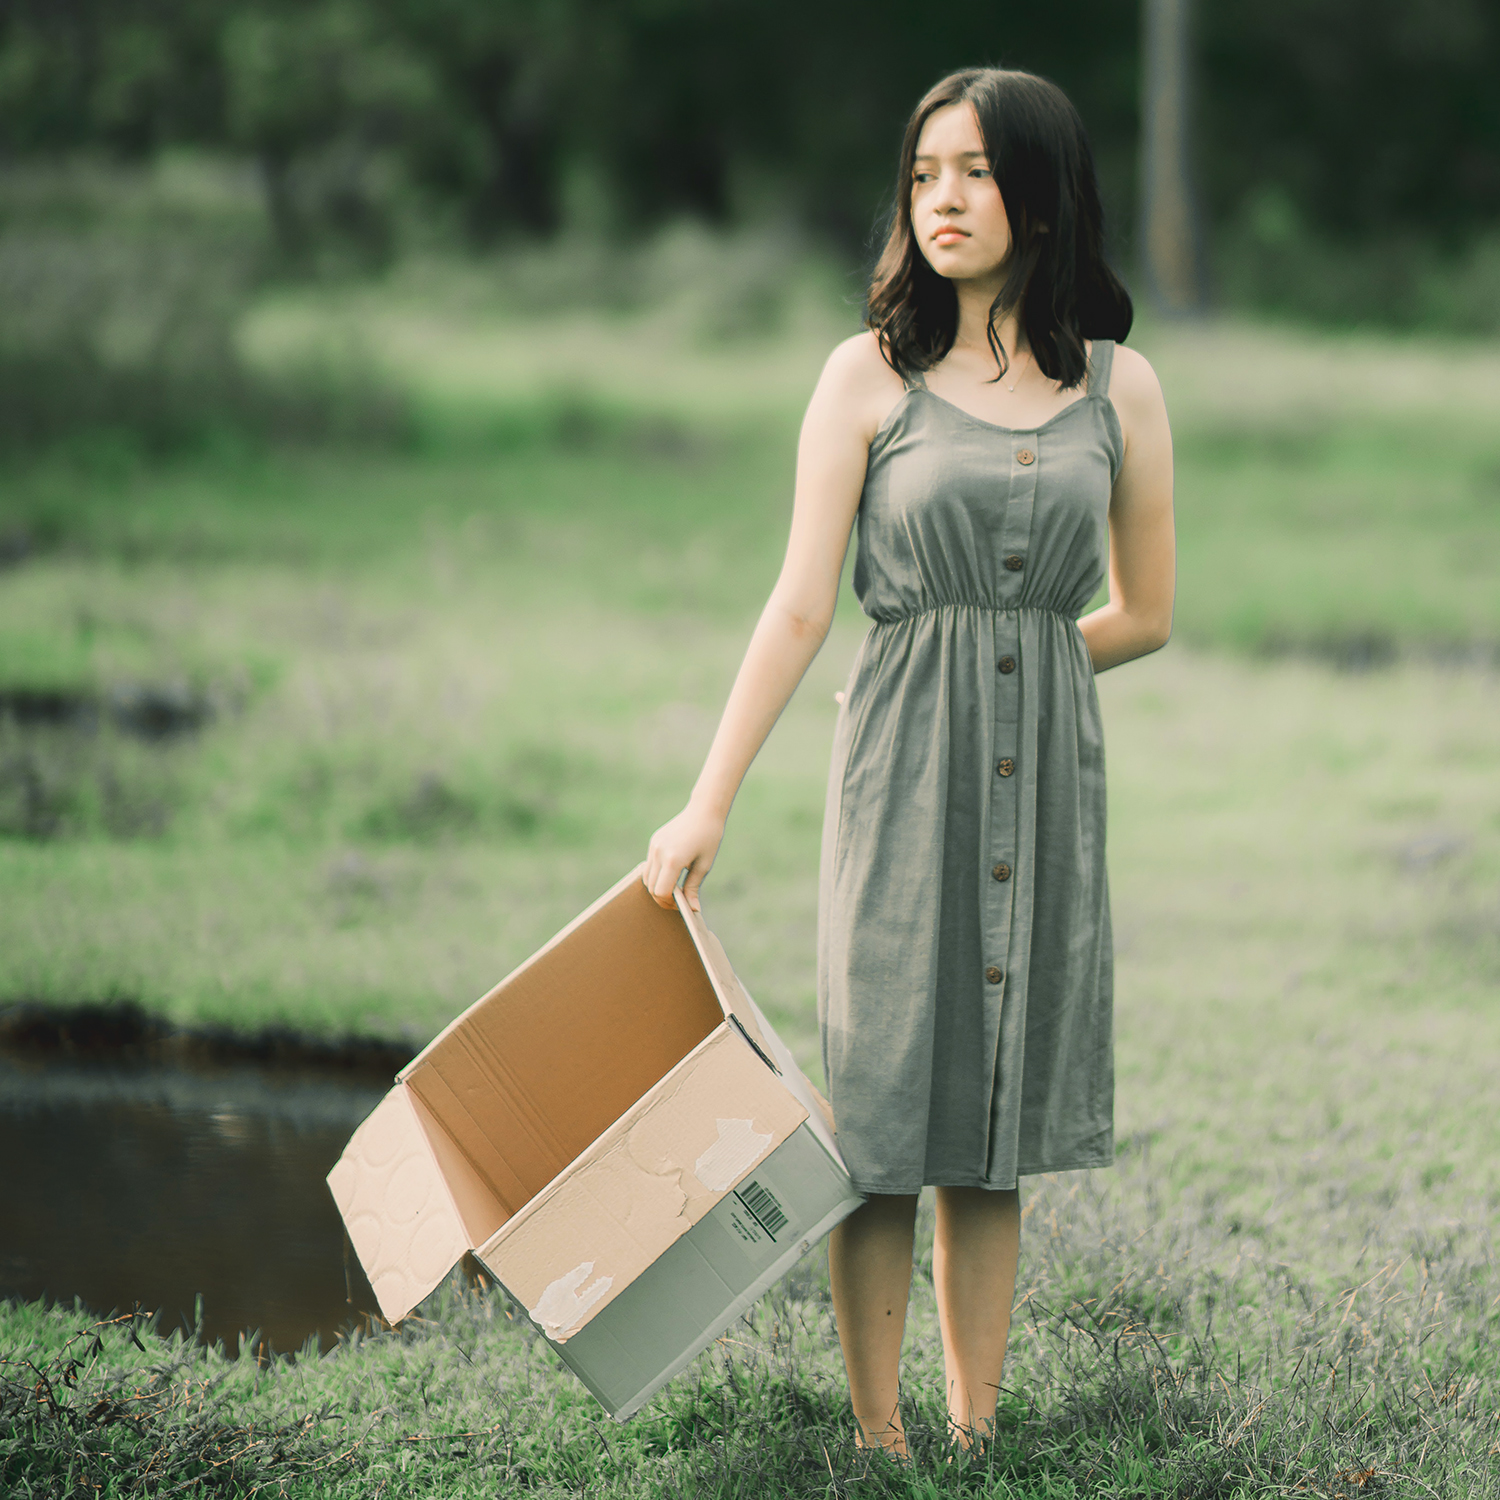 Woman with box in meadow by ryanniel masucol via pexels